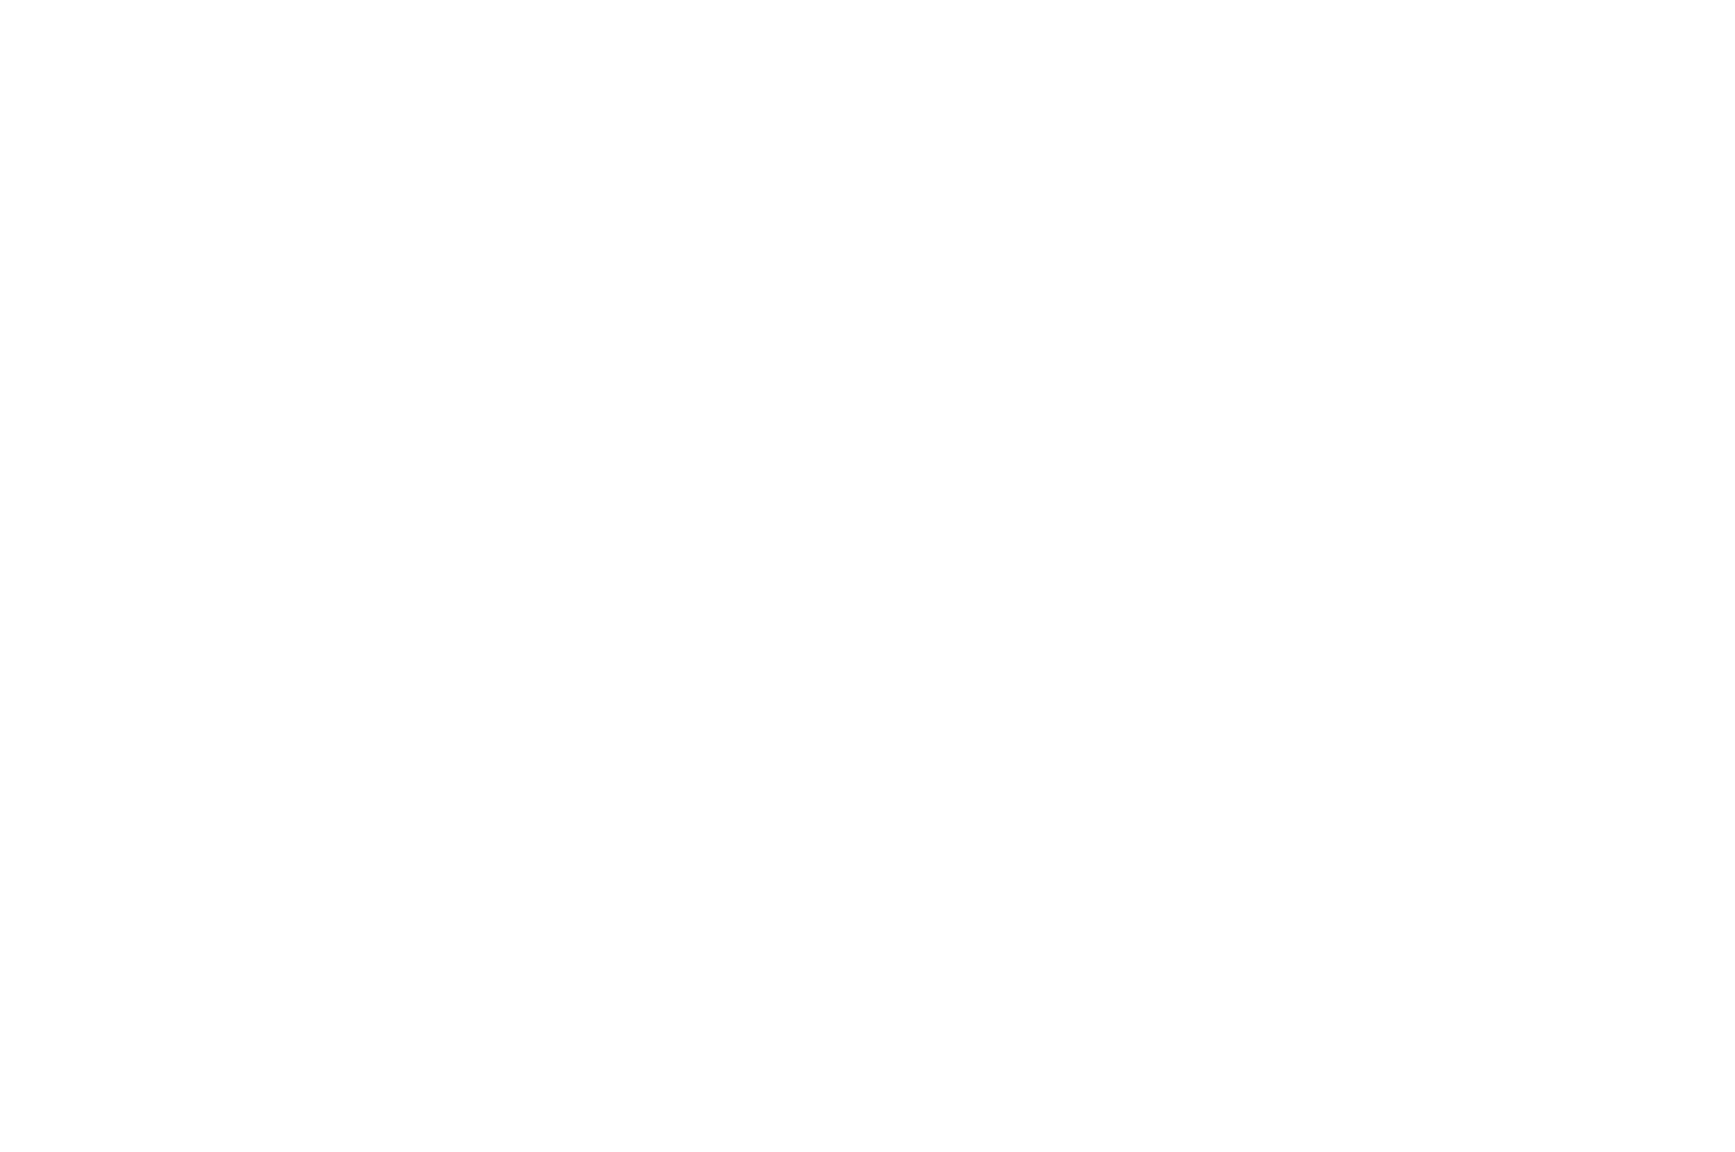 OFFICIAL SELECTION - InJustice for All Film Festival - 2019.png